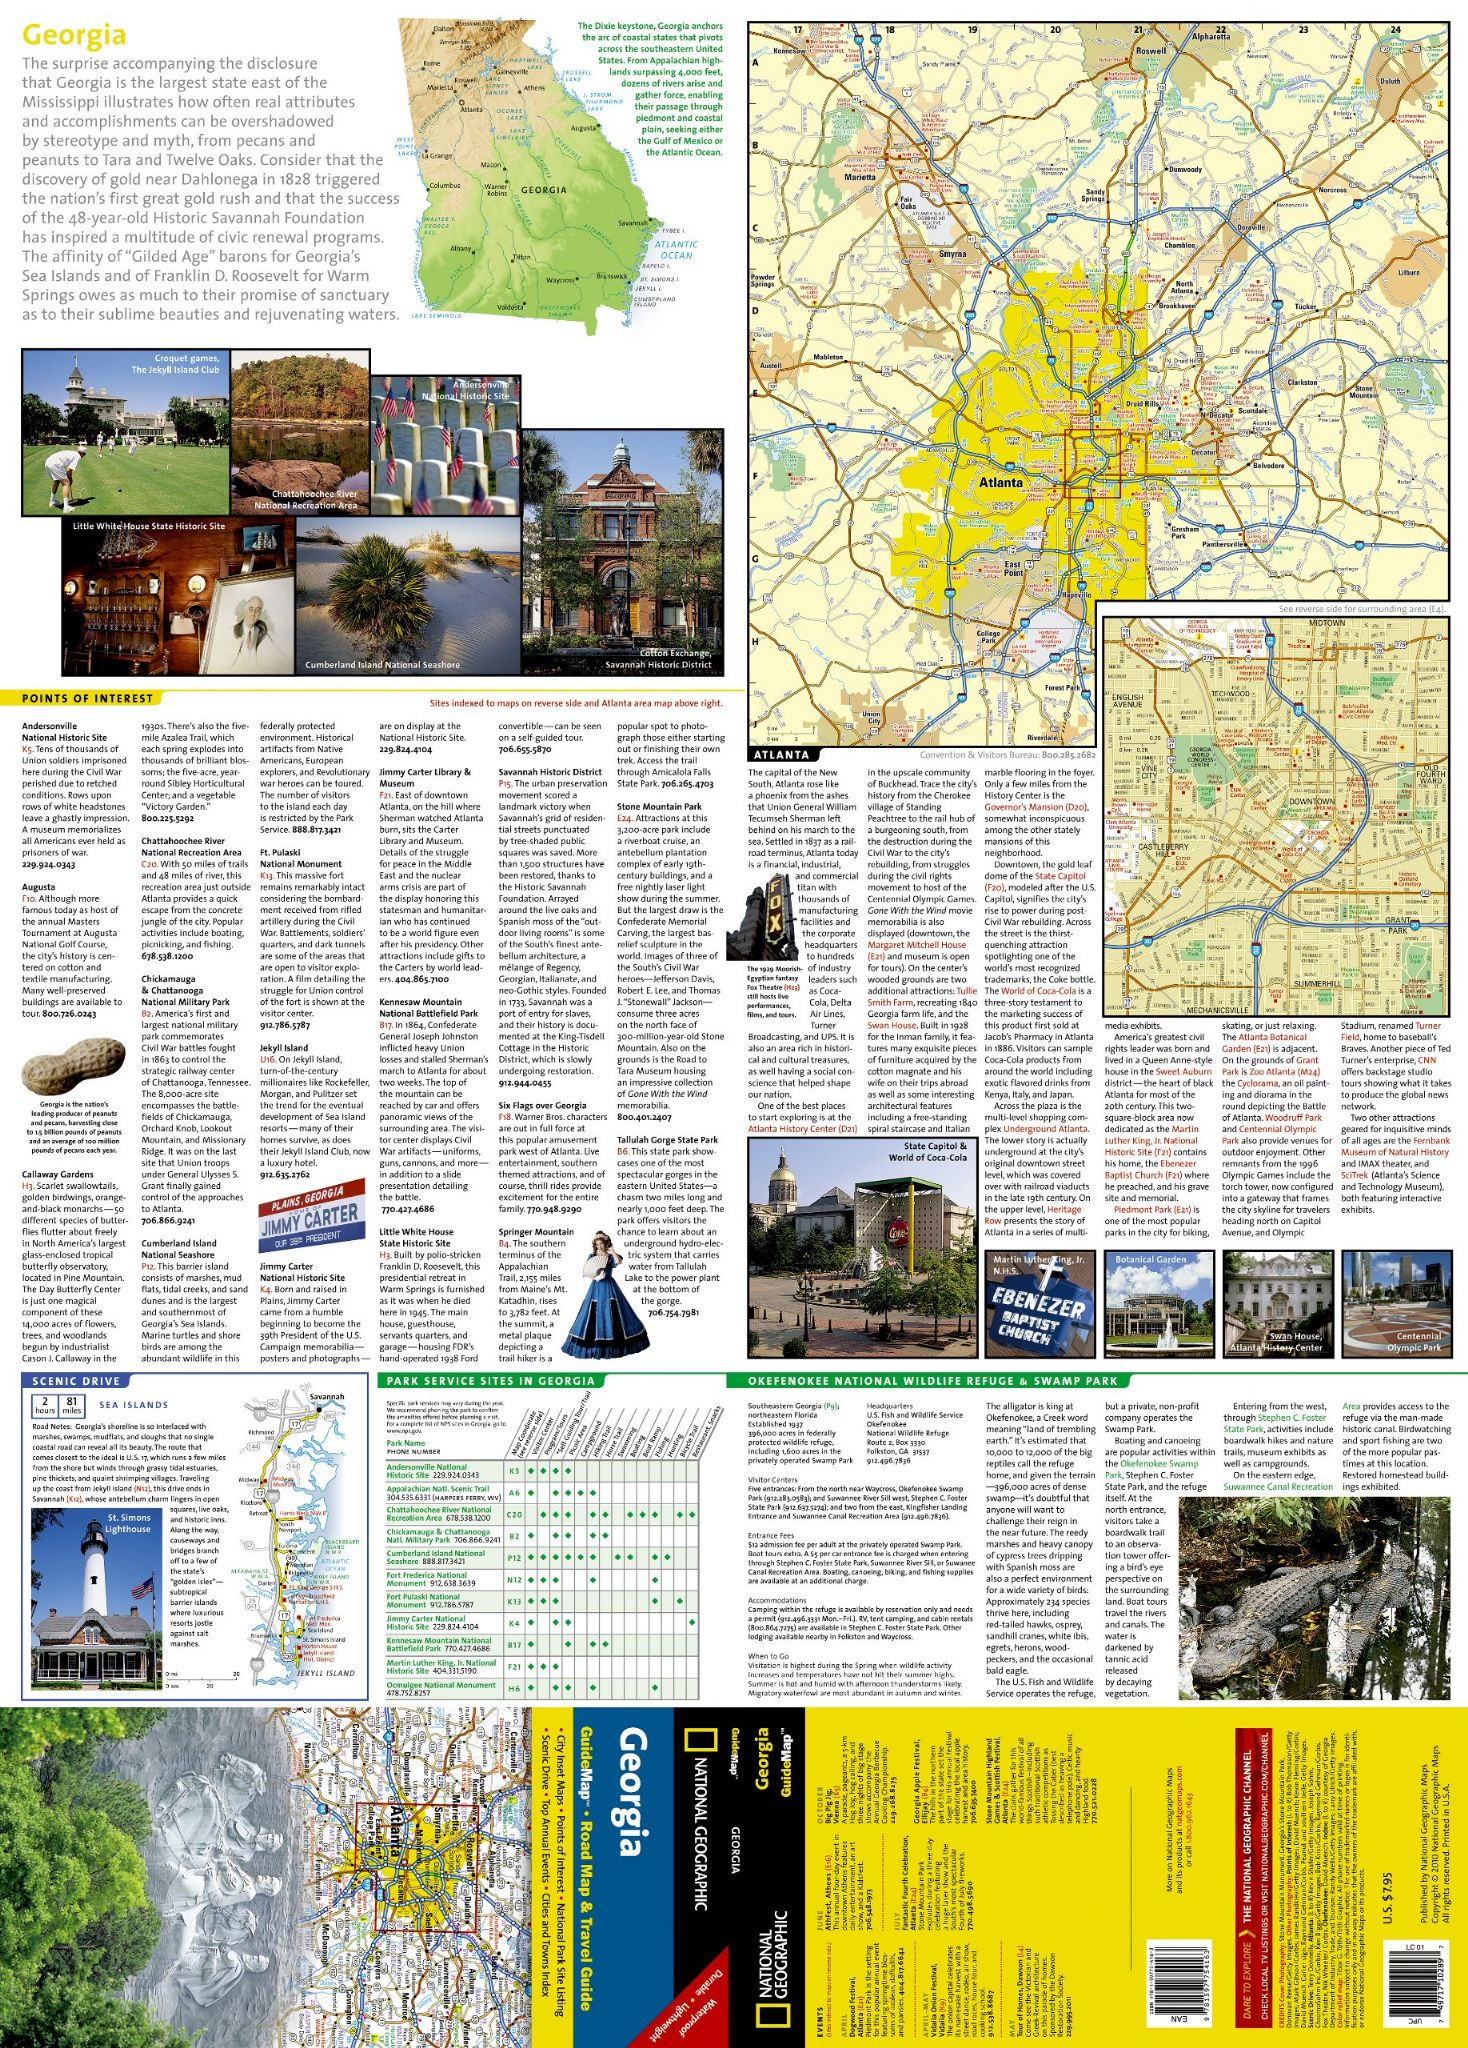 State Of Georgia Road Map.Georgia Road Map Travel Guide Gm18